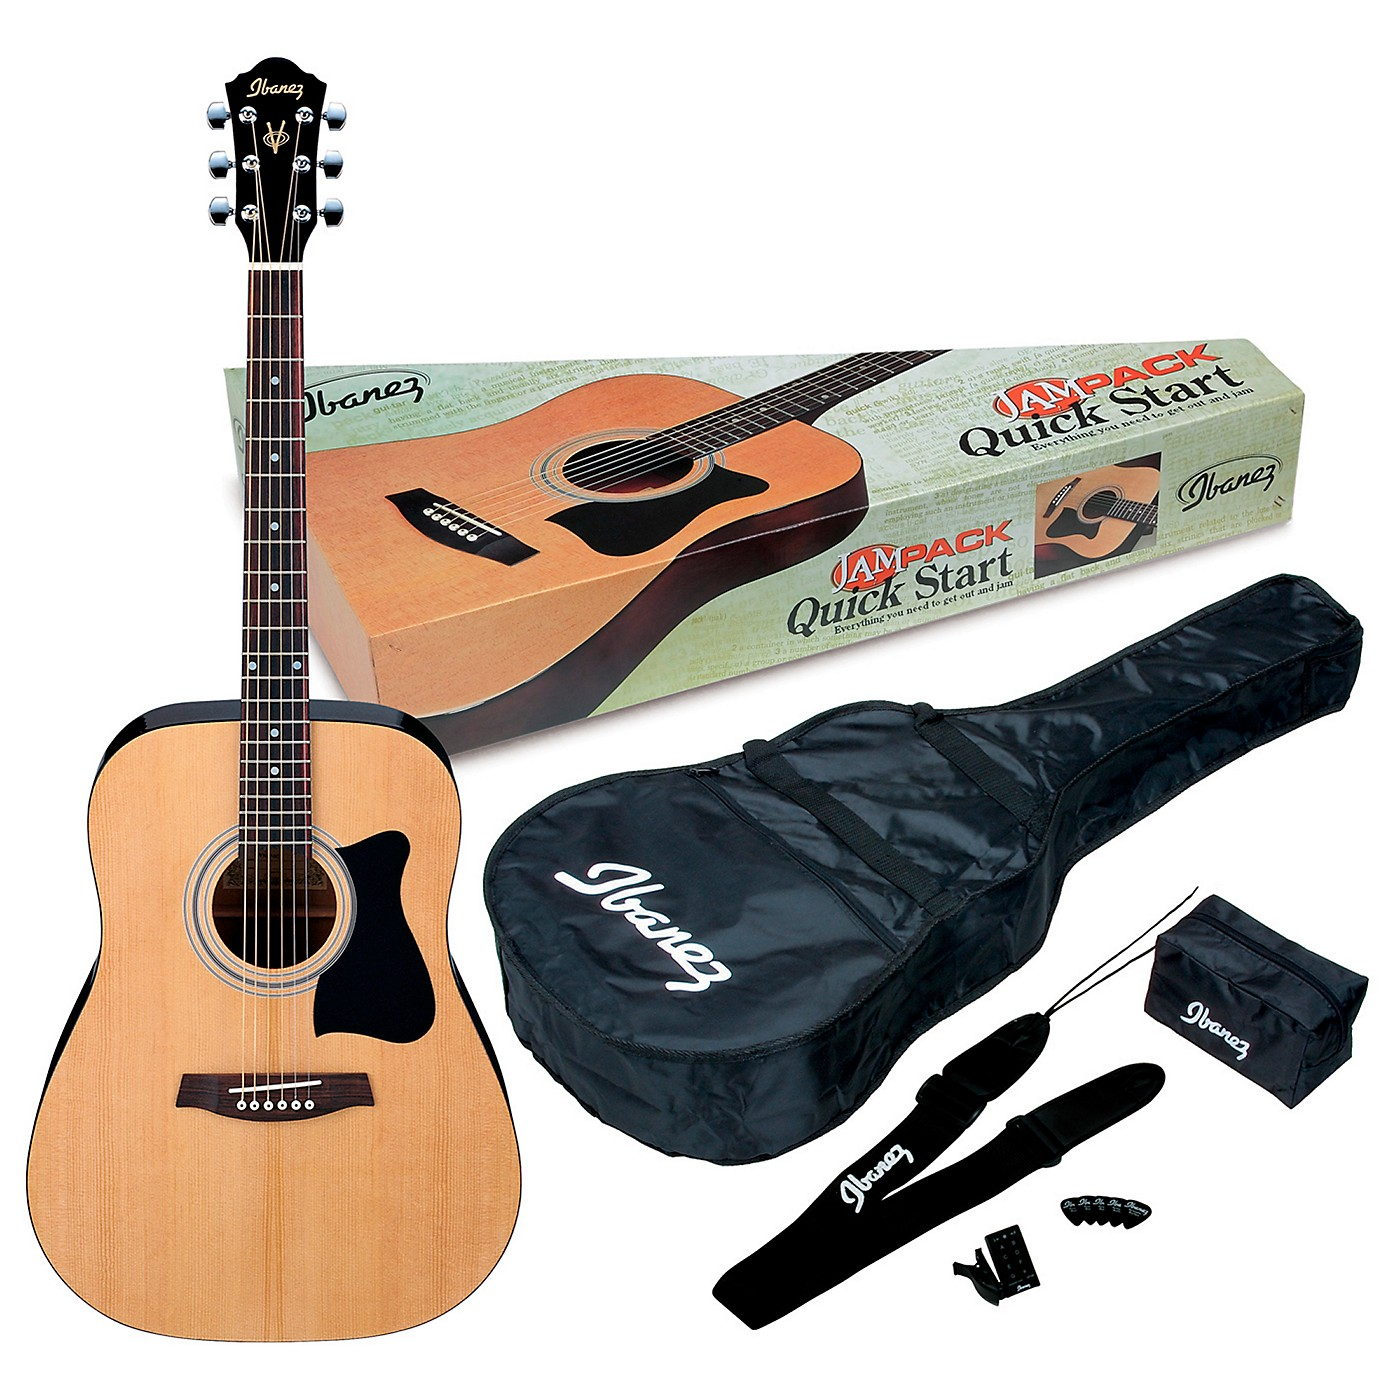 Ibanez JamPack IJV50 Quickstart Dreadnought Acoustic Guitar Pack thumbnail